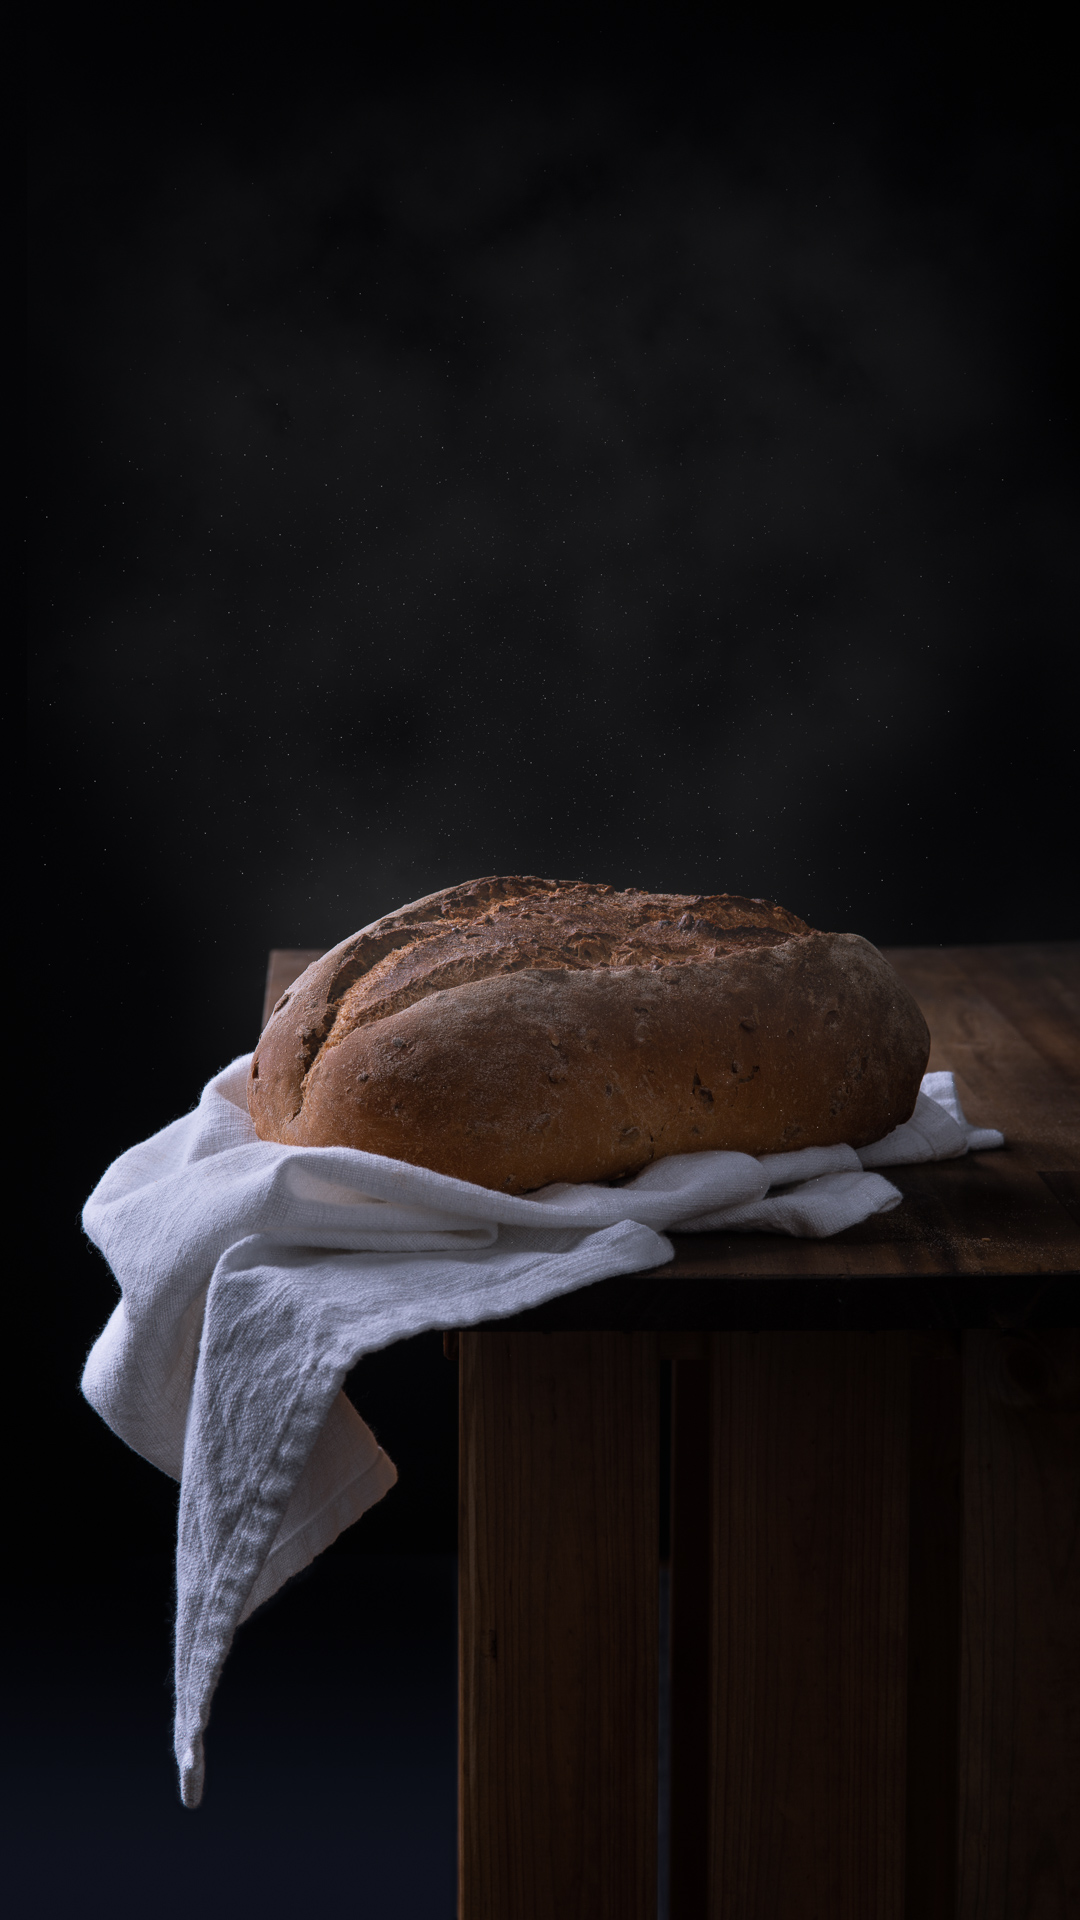 Freshly baked loaf of bread food photography